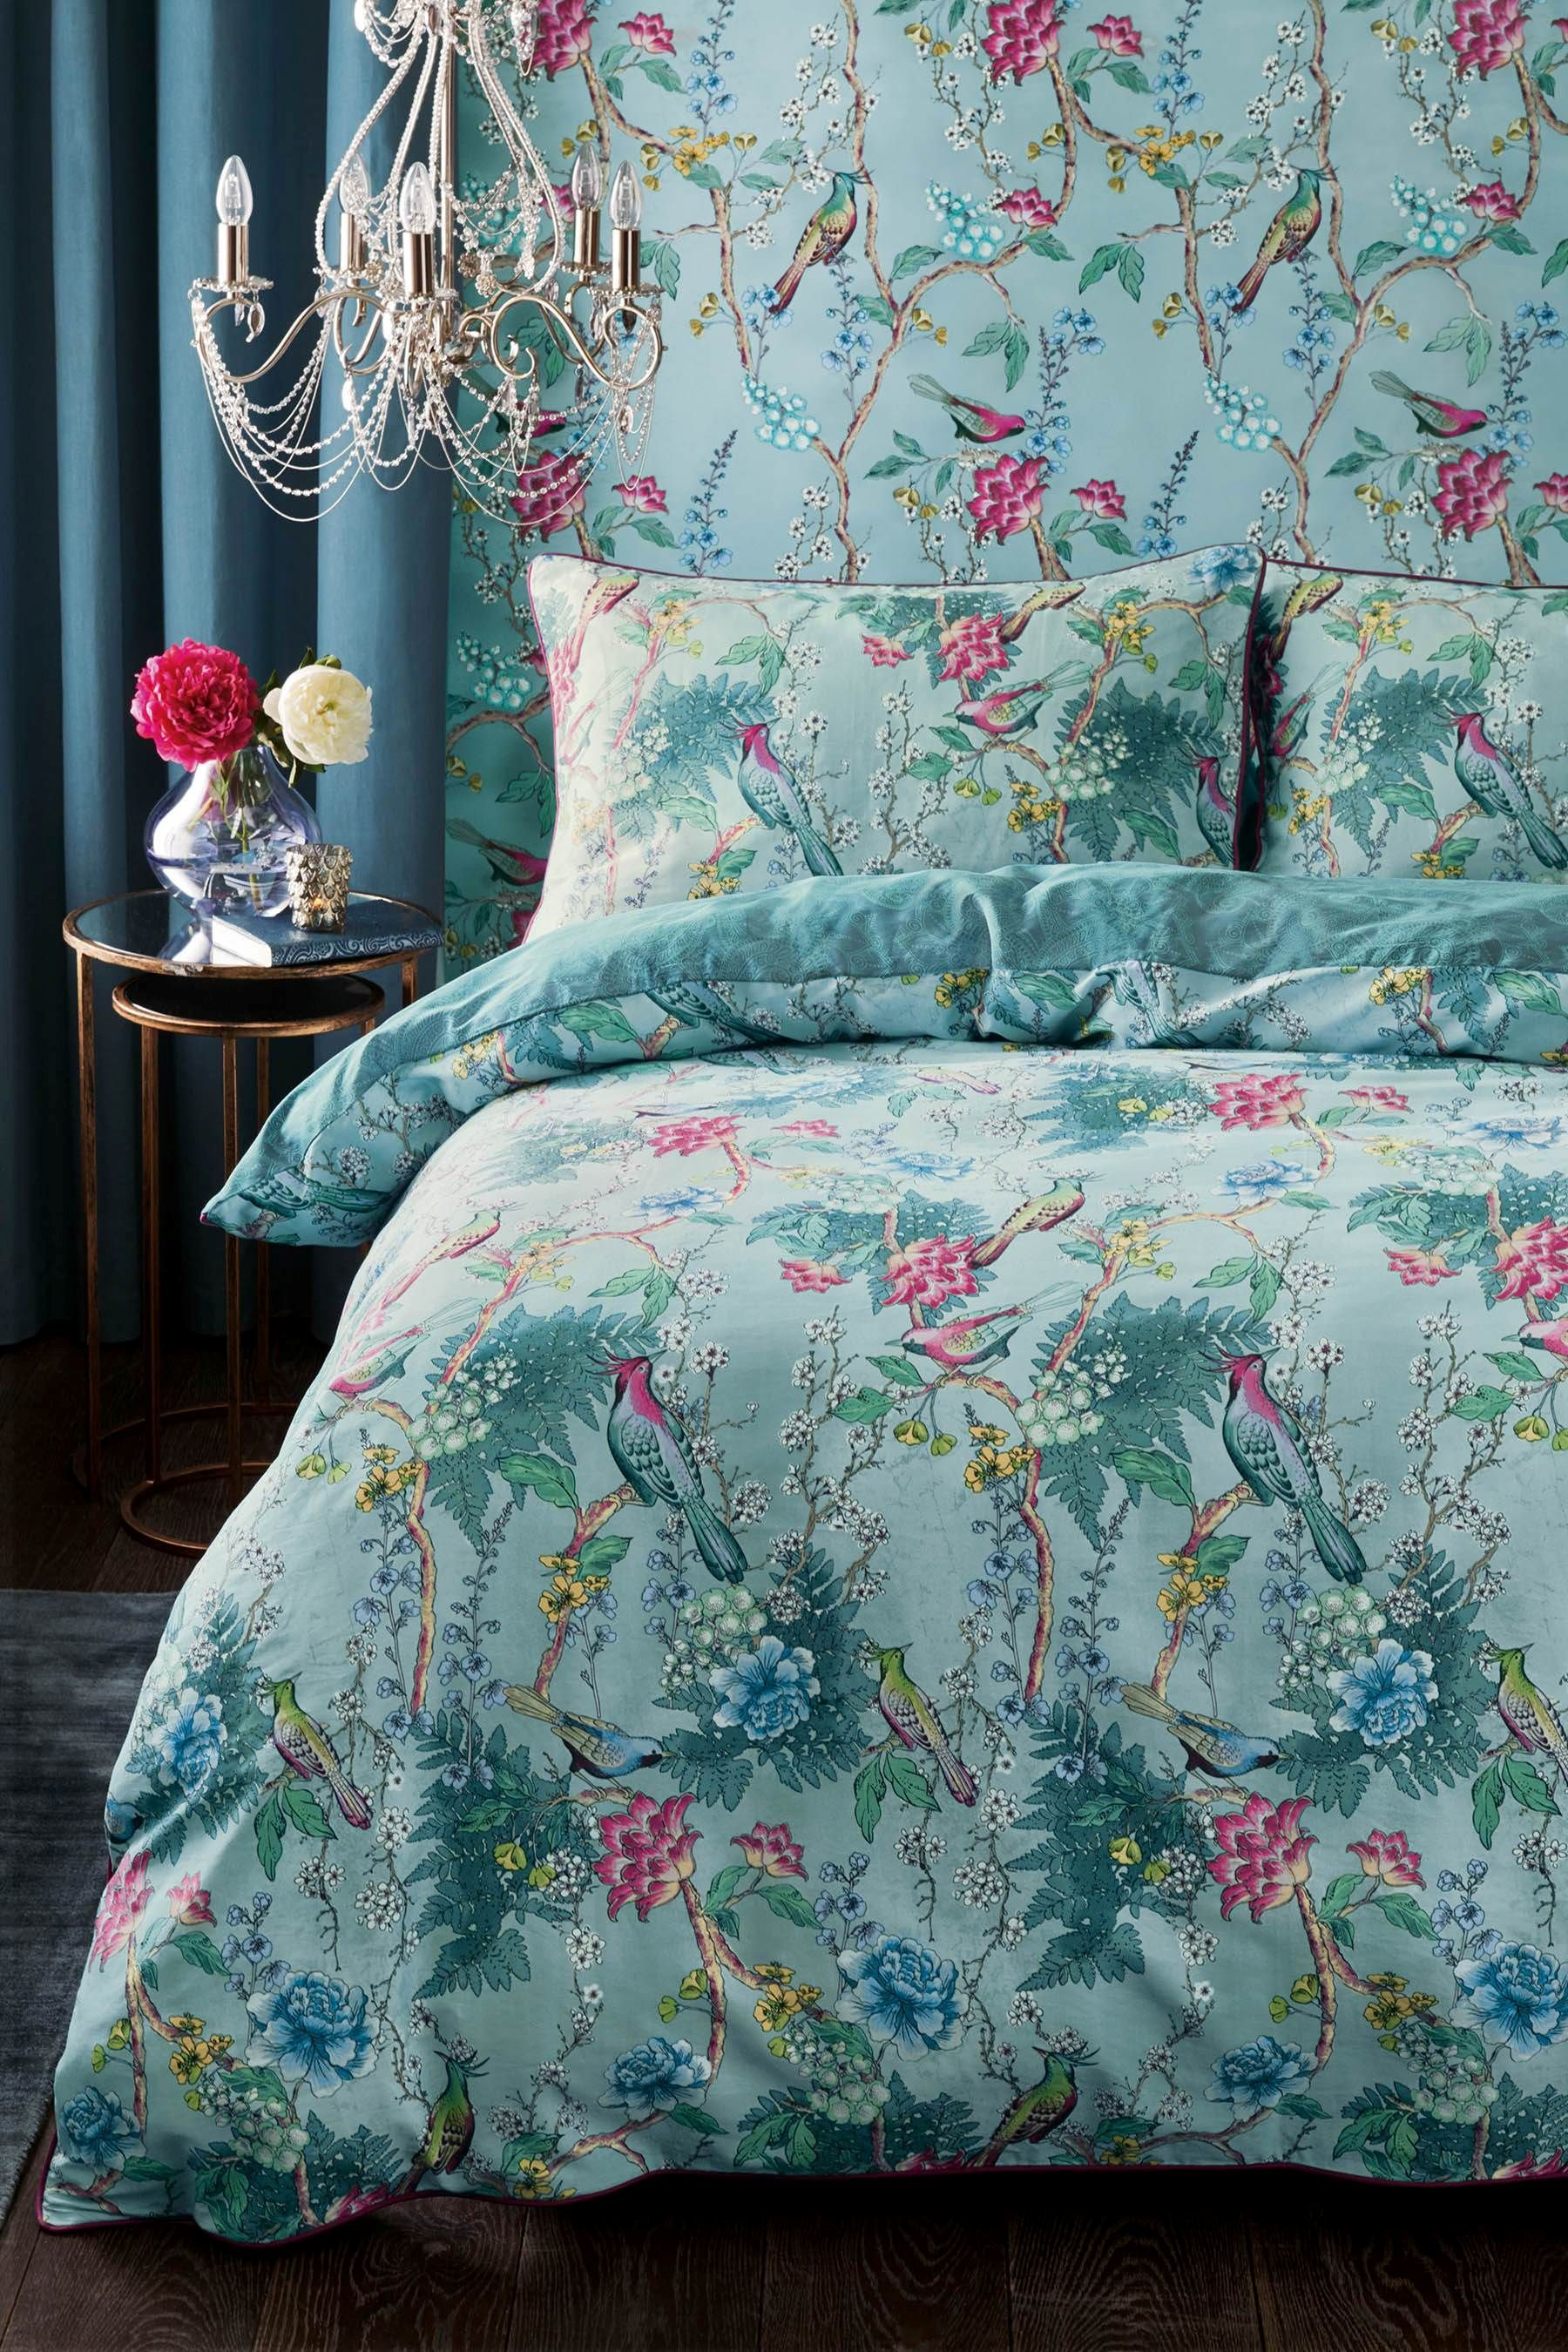 Buy Blue Birds Sateen Bed Set From The Next Uk